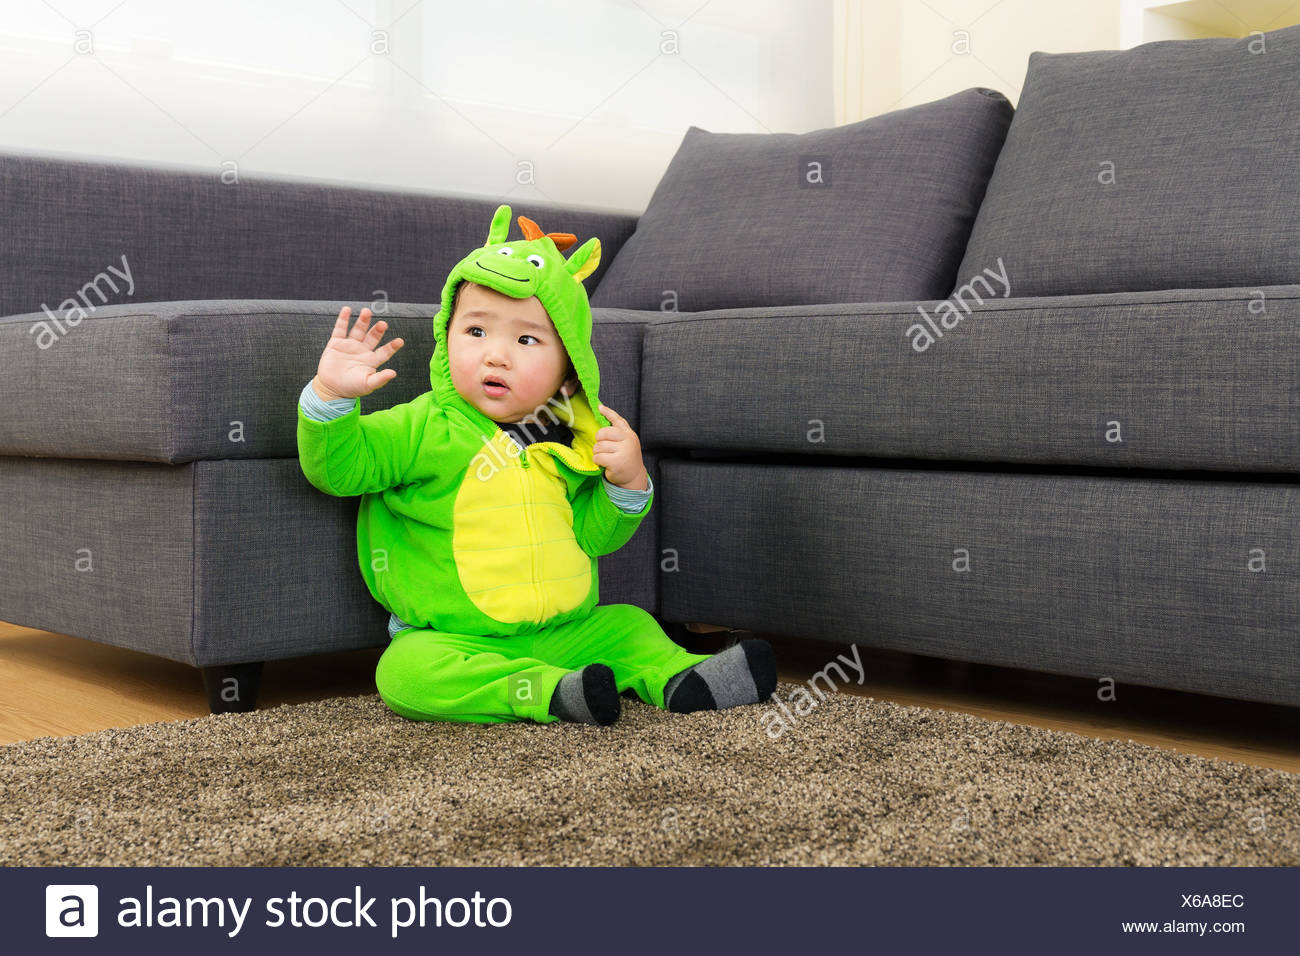 baby with dinosaur halloween party costume stock photo: 279280020